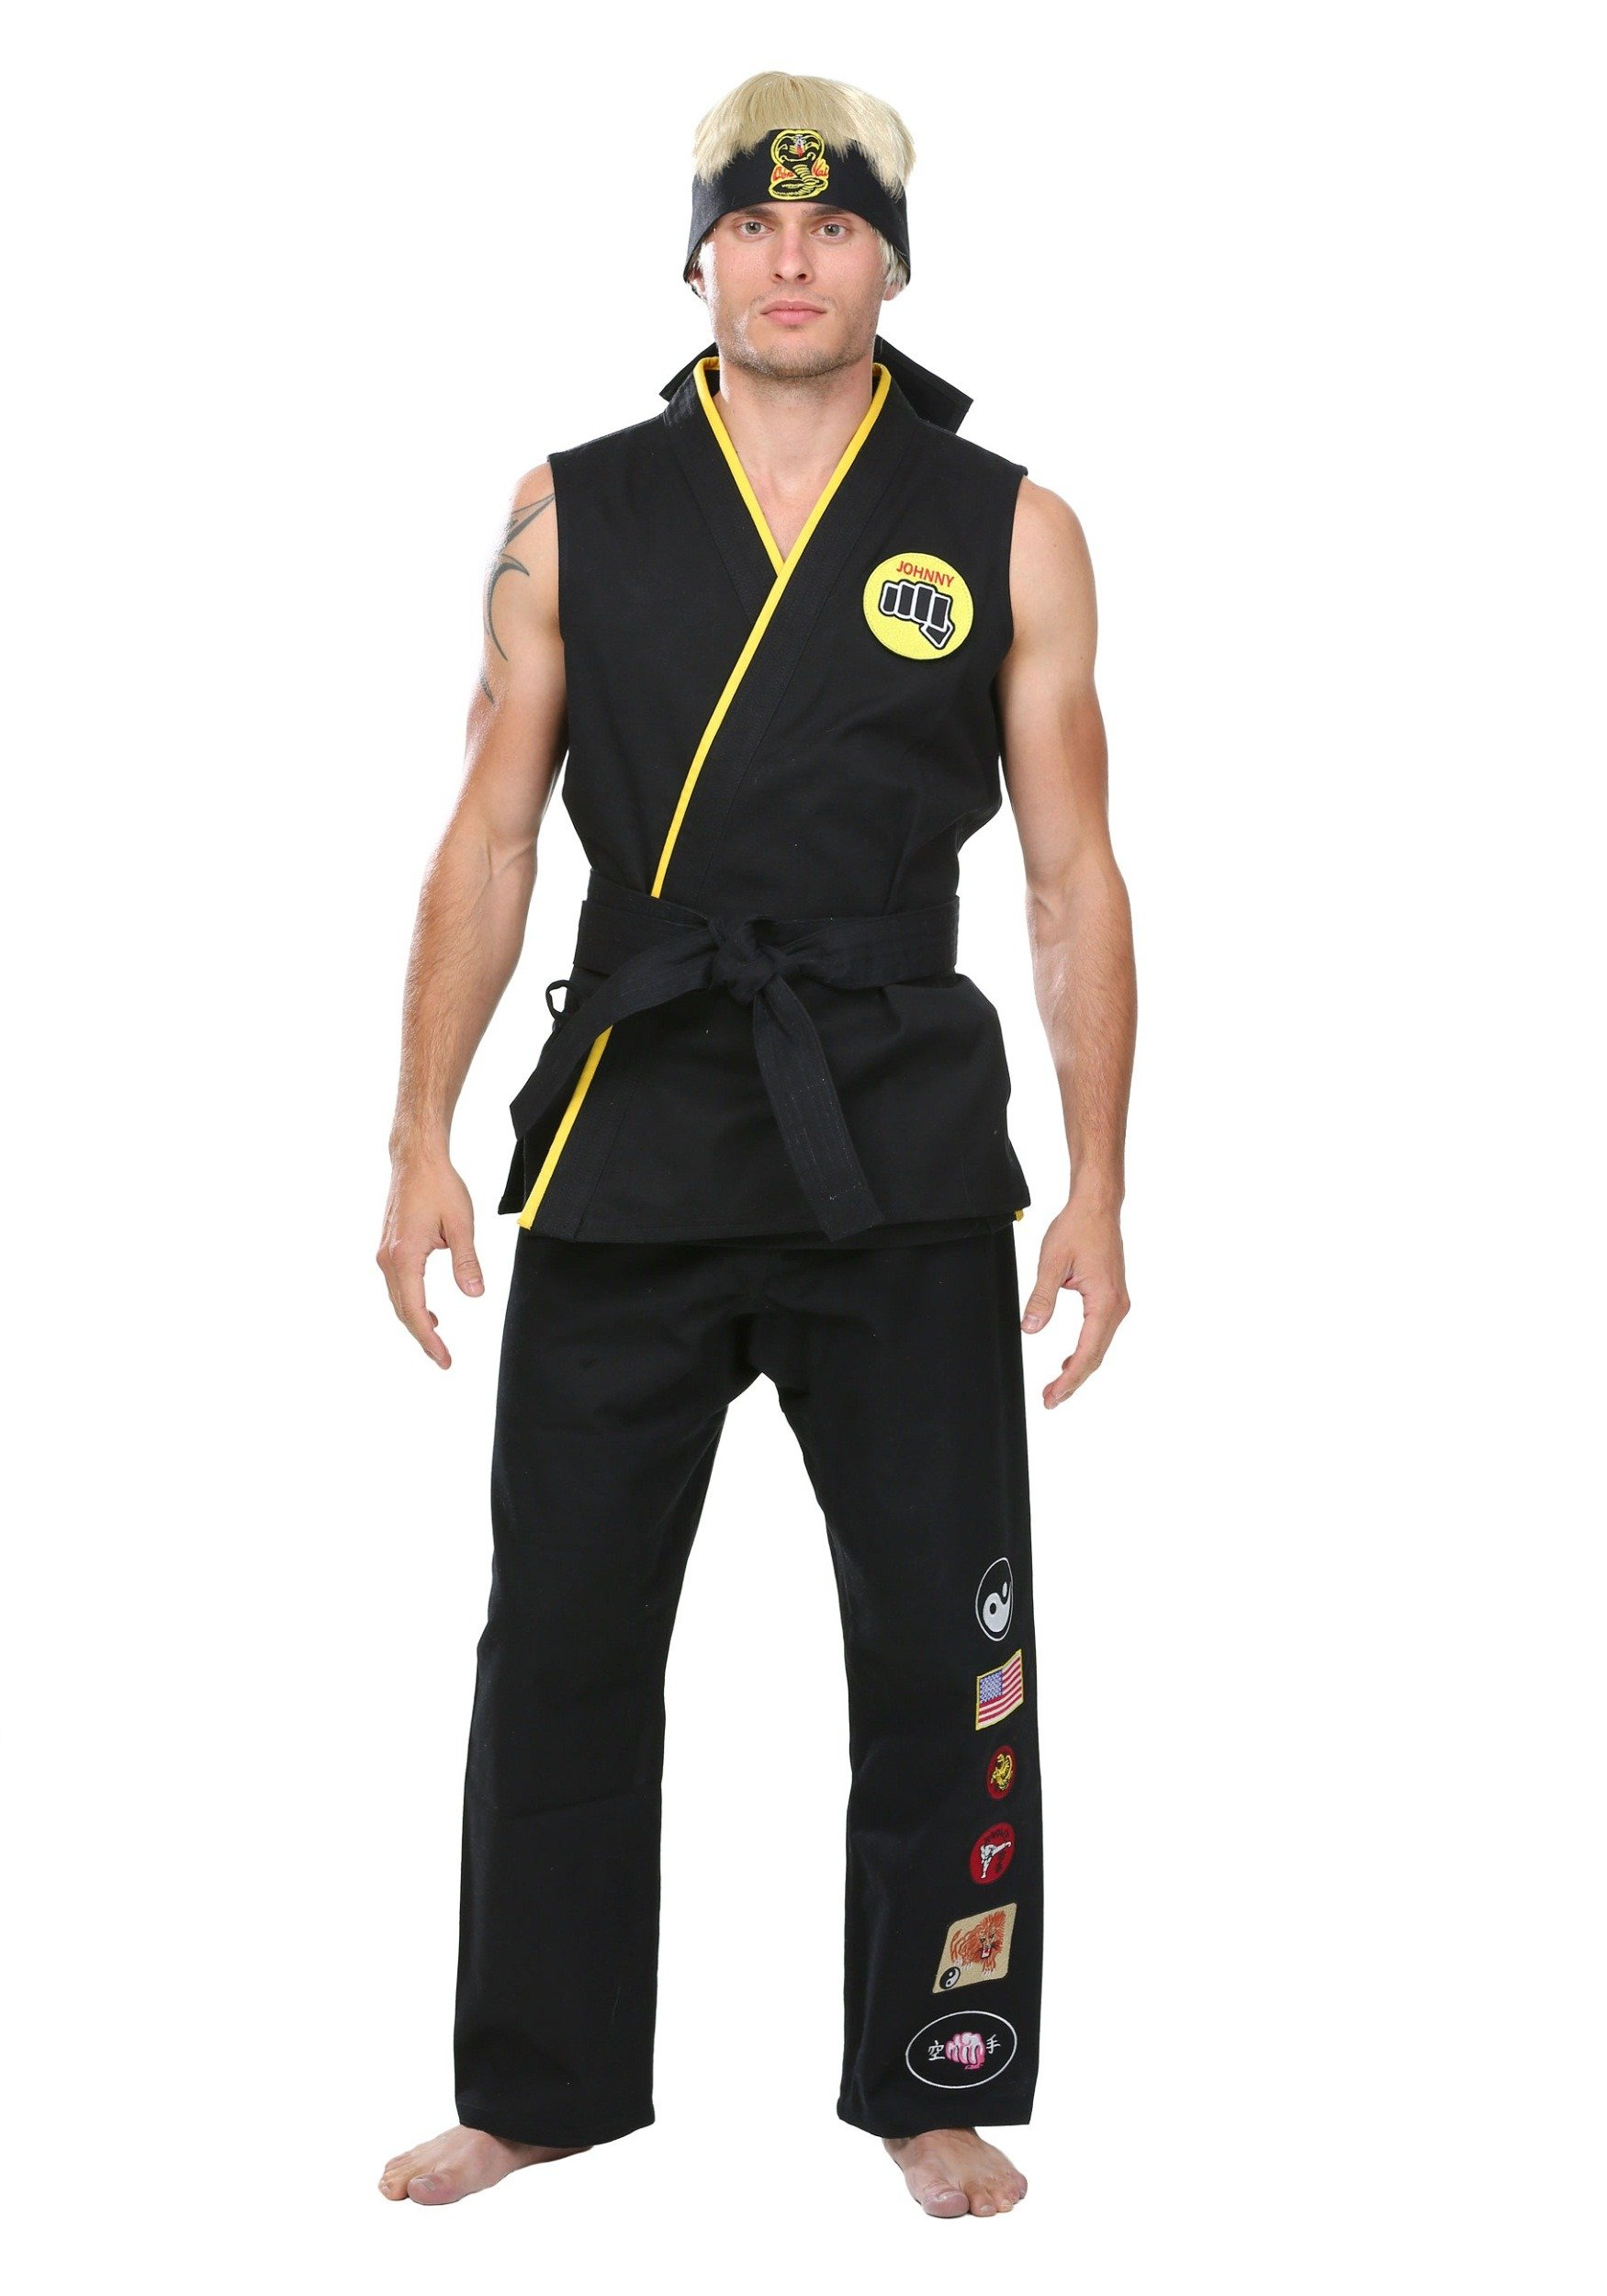 Super Elite Cobra Kai Costume Small by SSCO Pak Inds (Image #1)